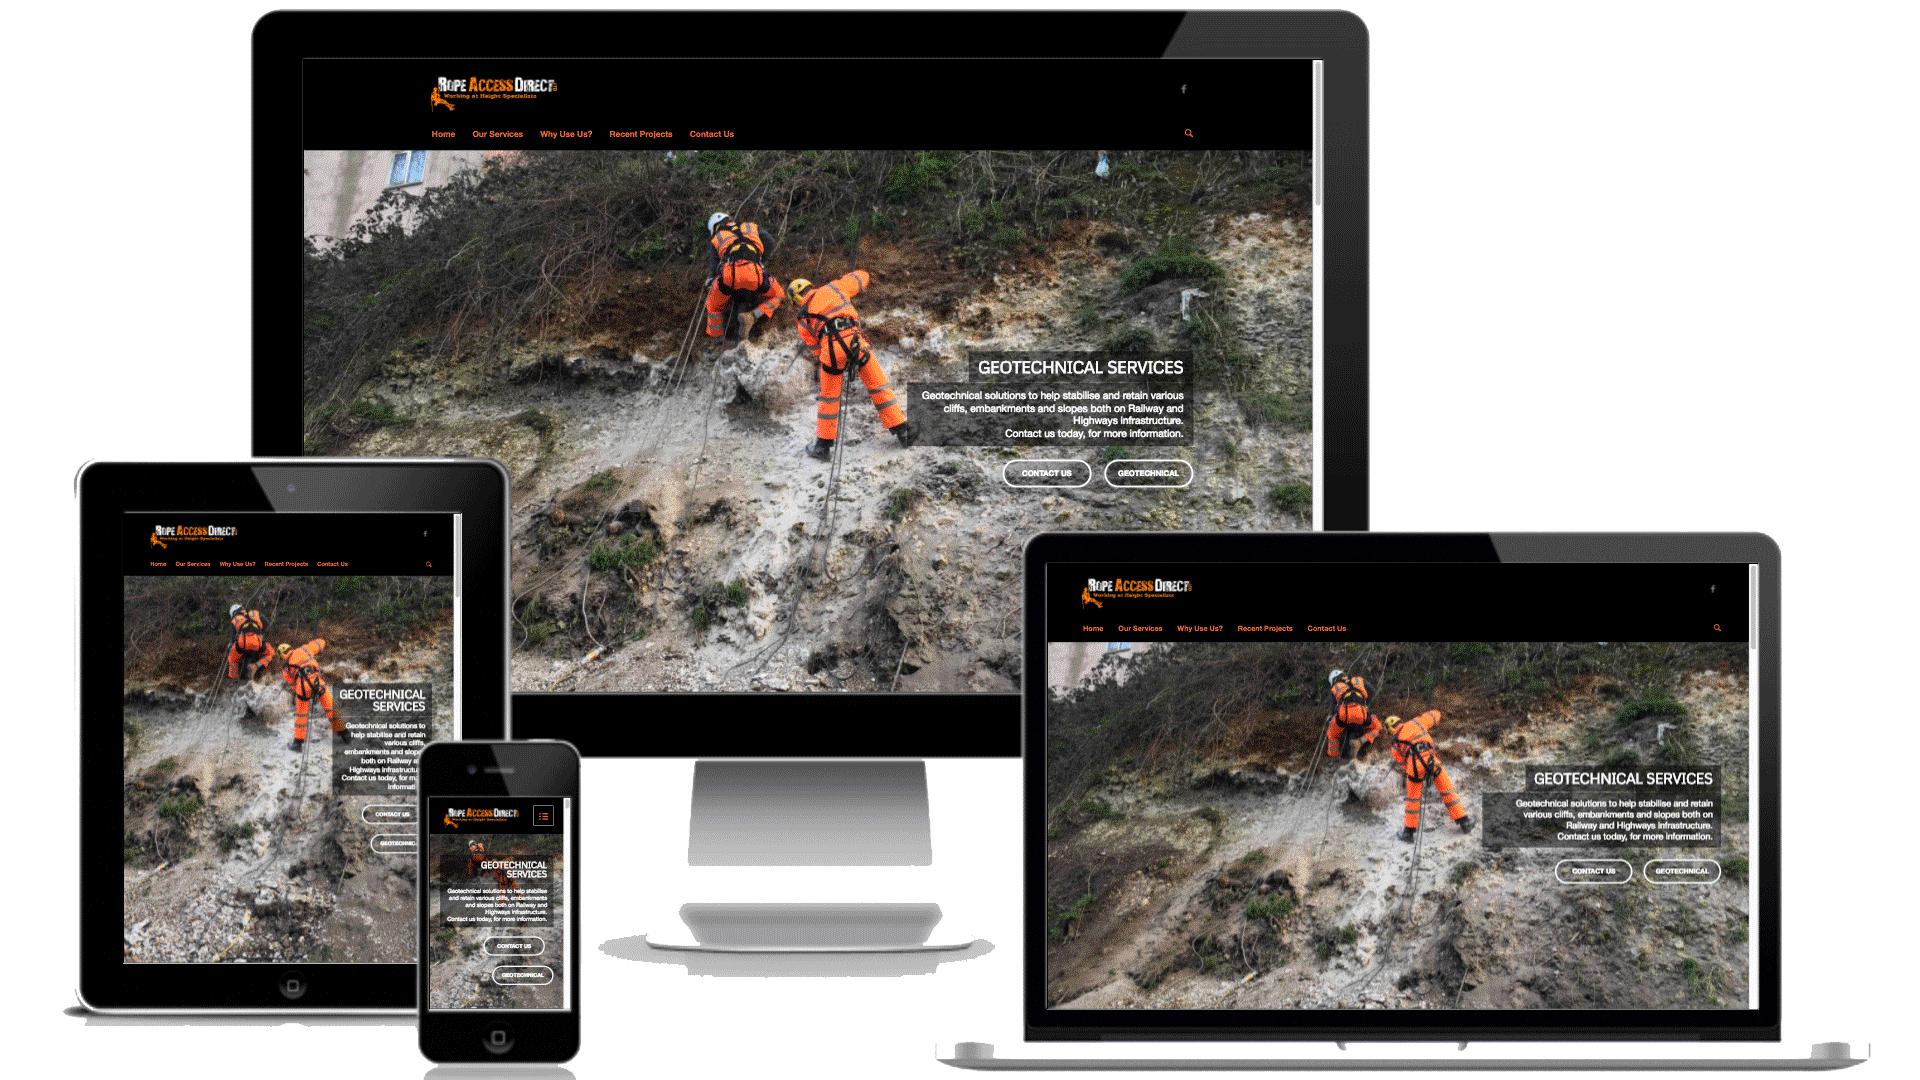 web-design-ashford-1920x1080-rope-access-direct